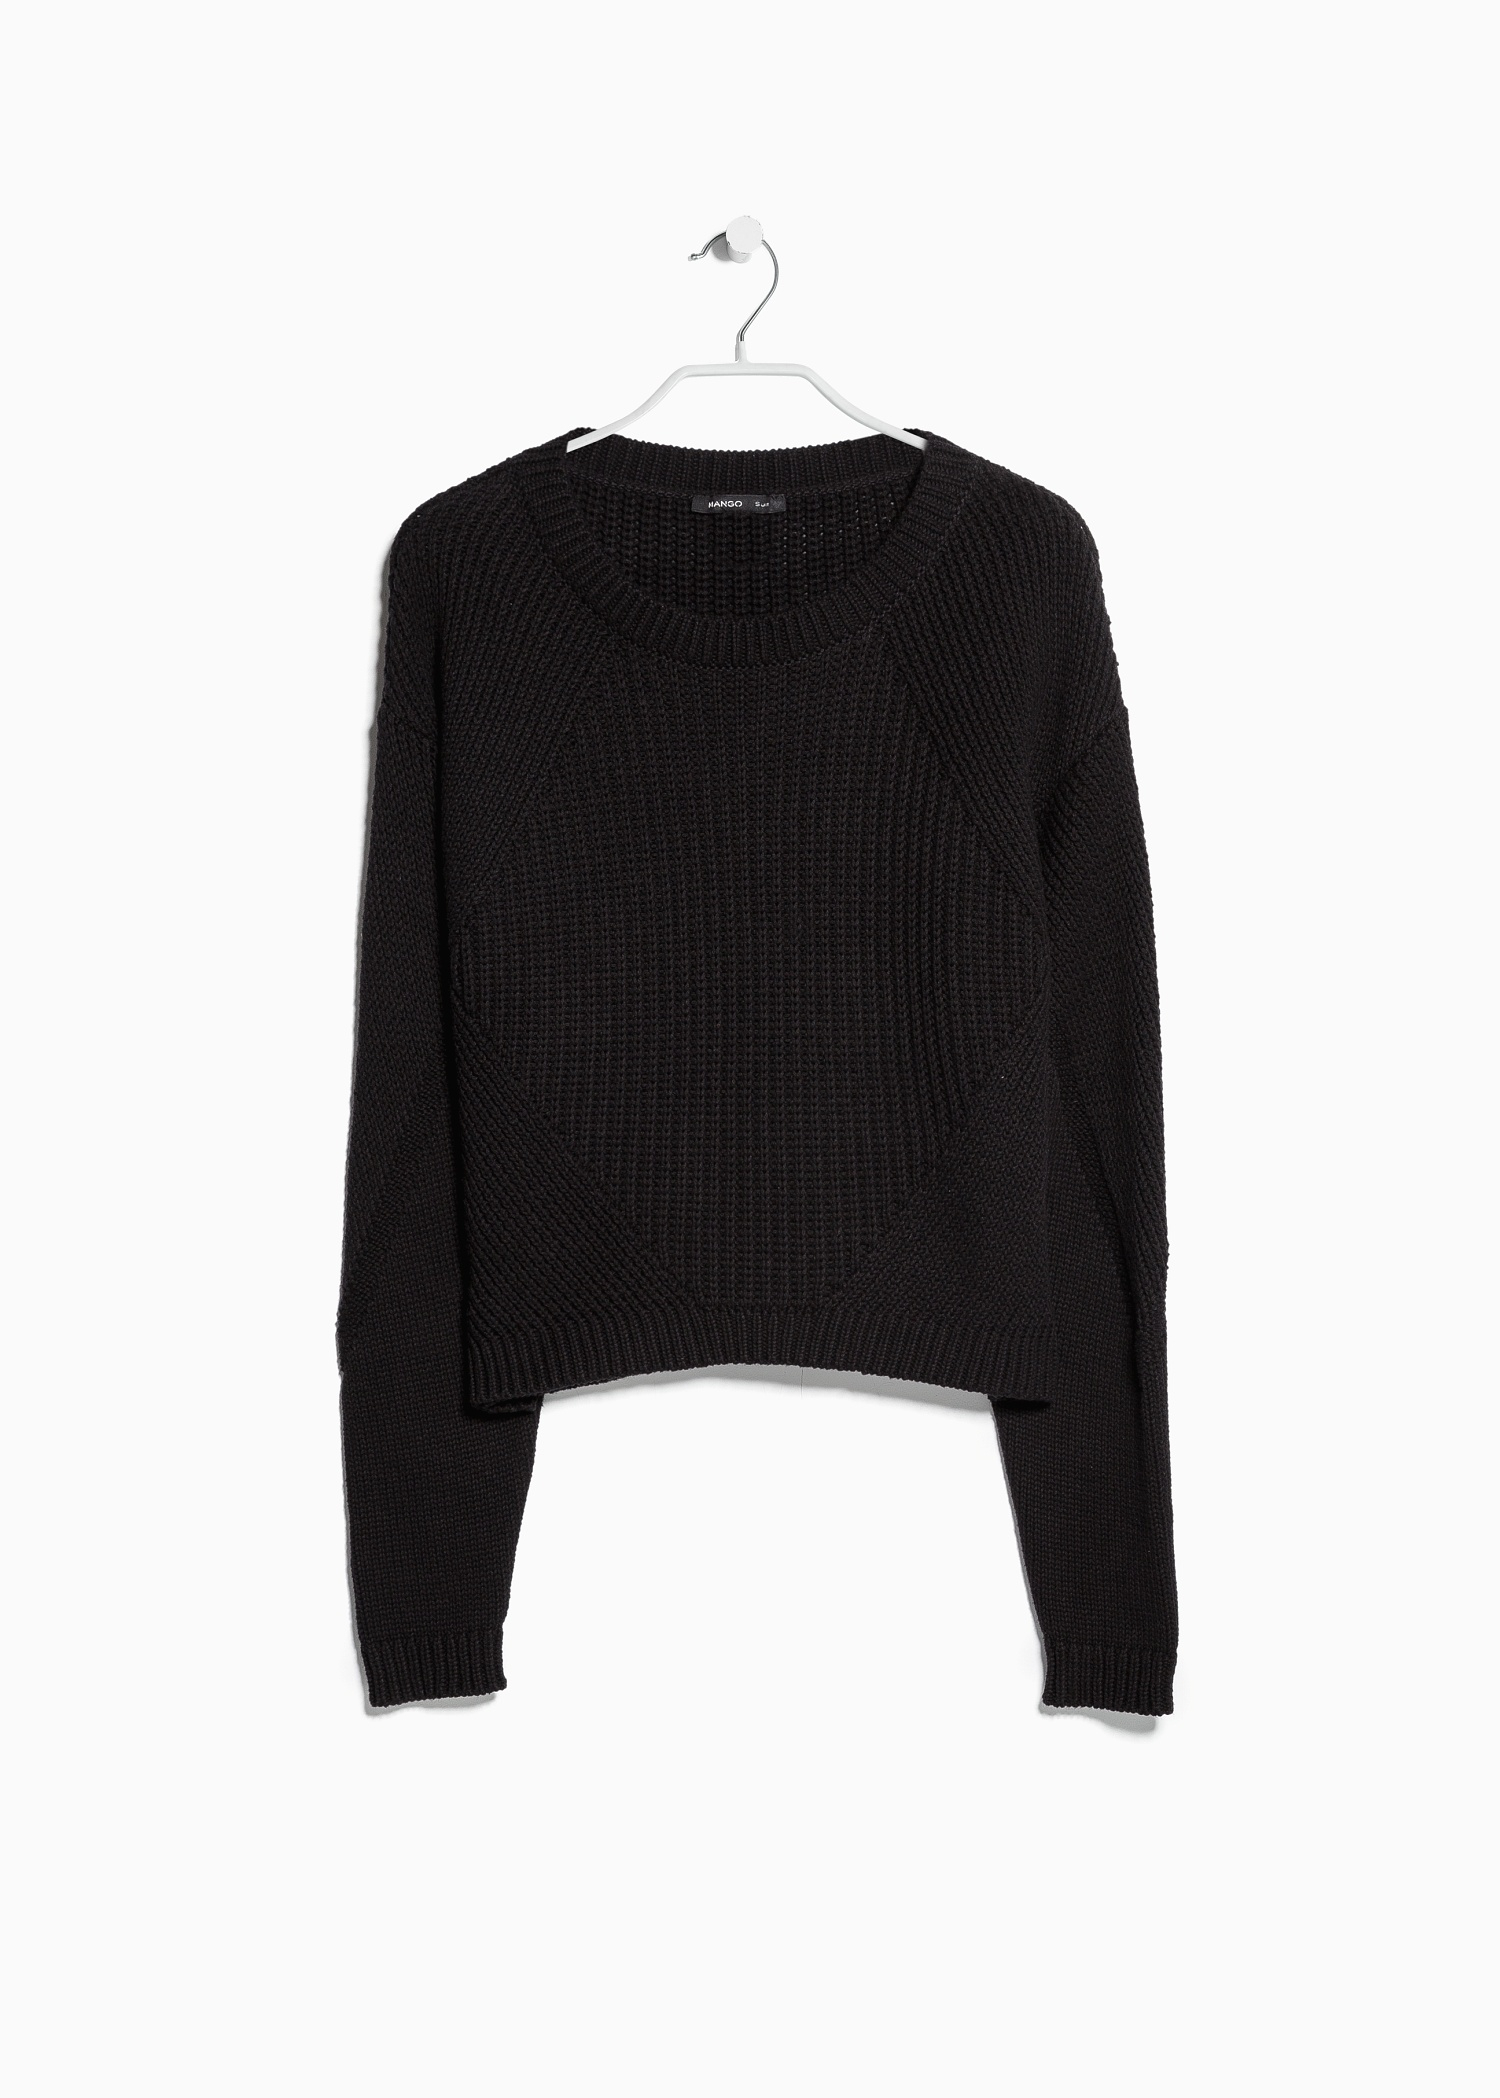 Mango Chunky-Knit Sweater in Black | Lyst